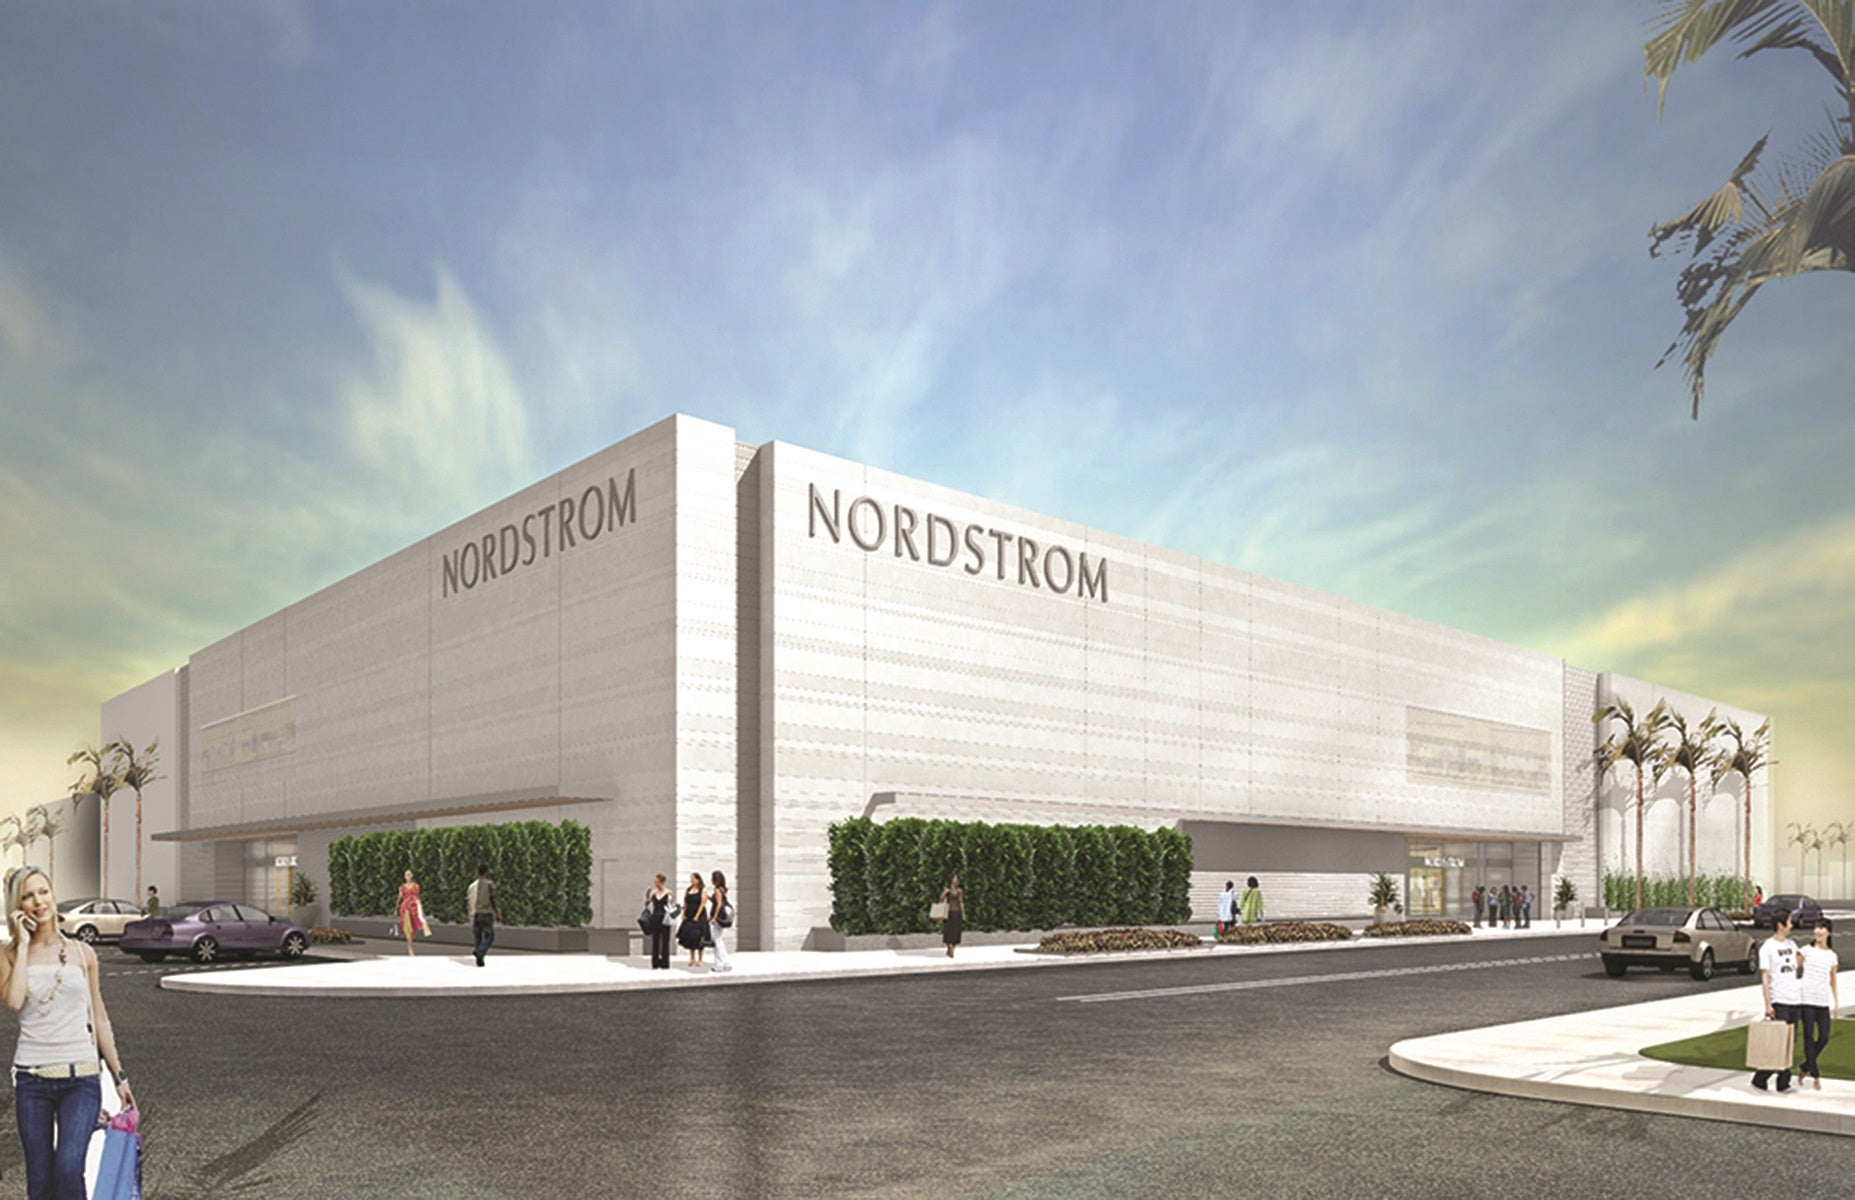 Nordstrom cuts 6,000 jobs, reduces workforce nationwide